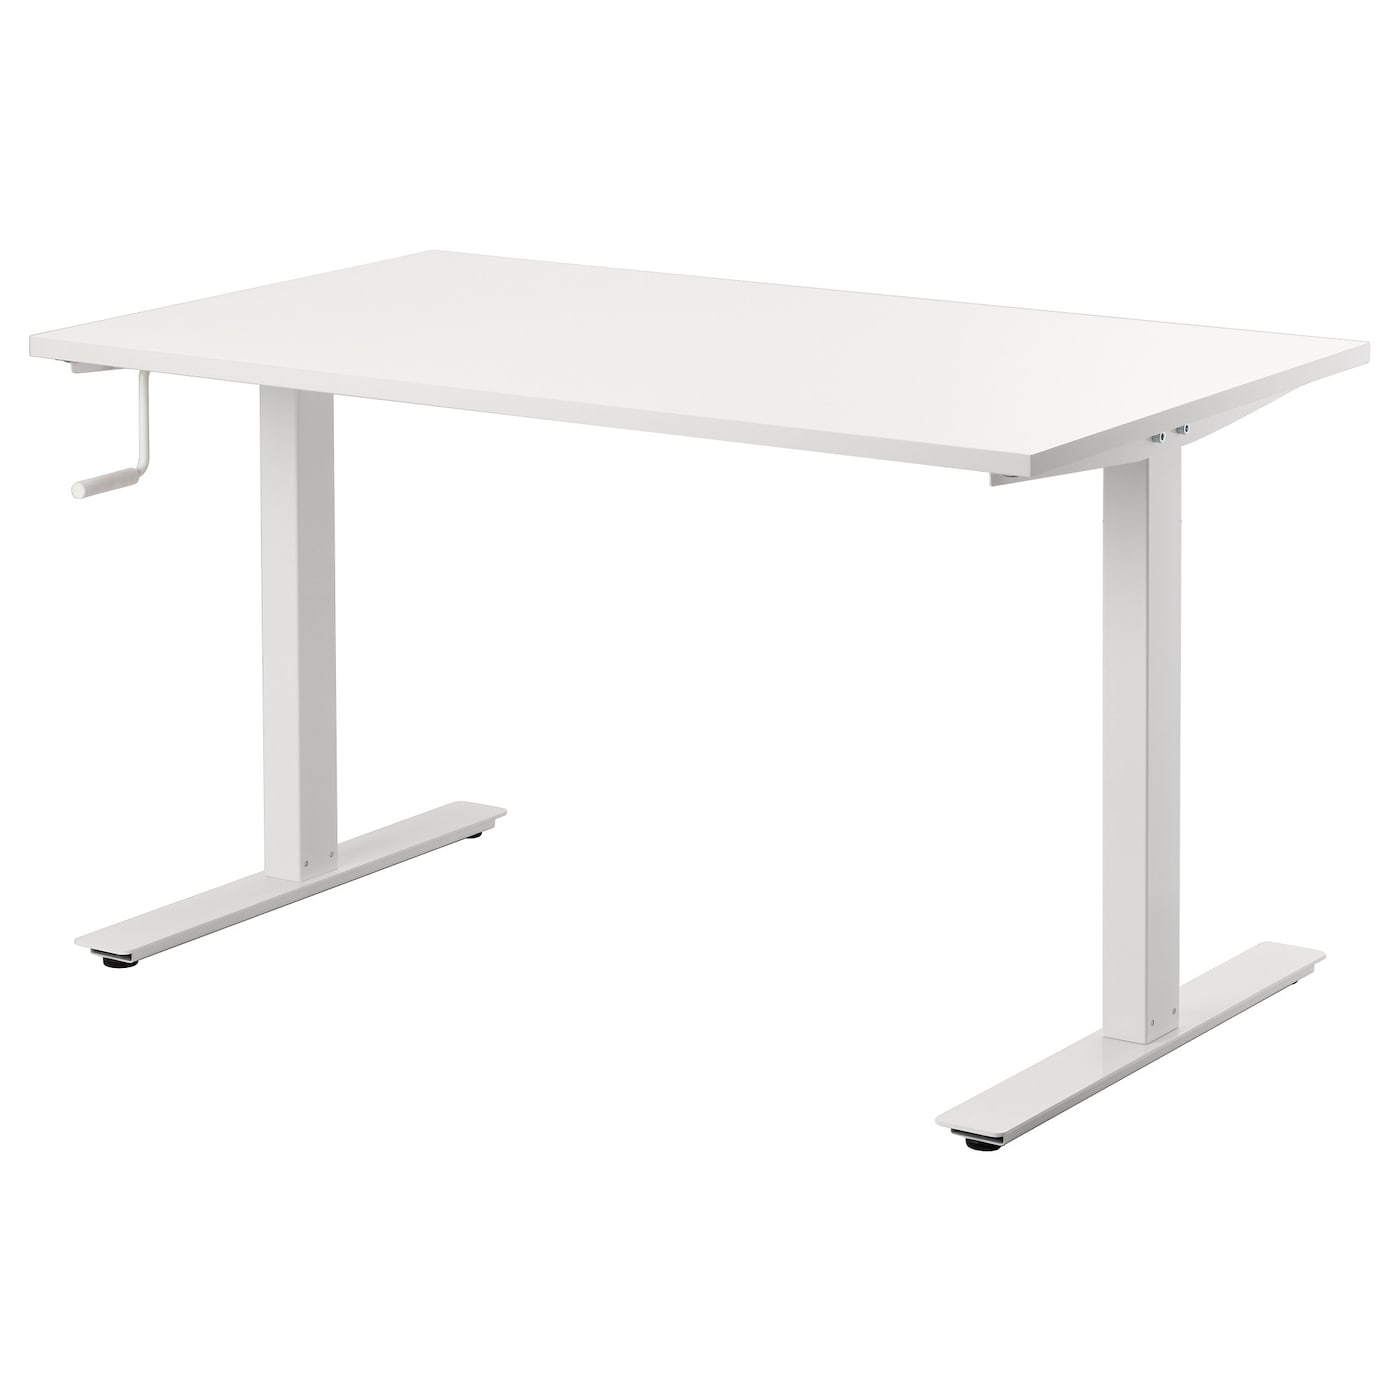 Skarsta desk sit stand white 120x70 cm ikea for Ikea motorized standing desk